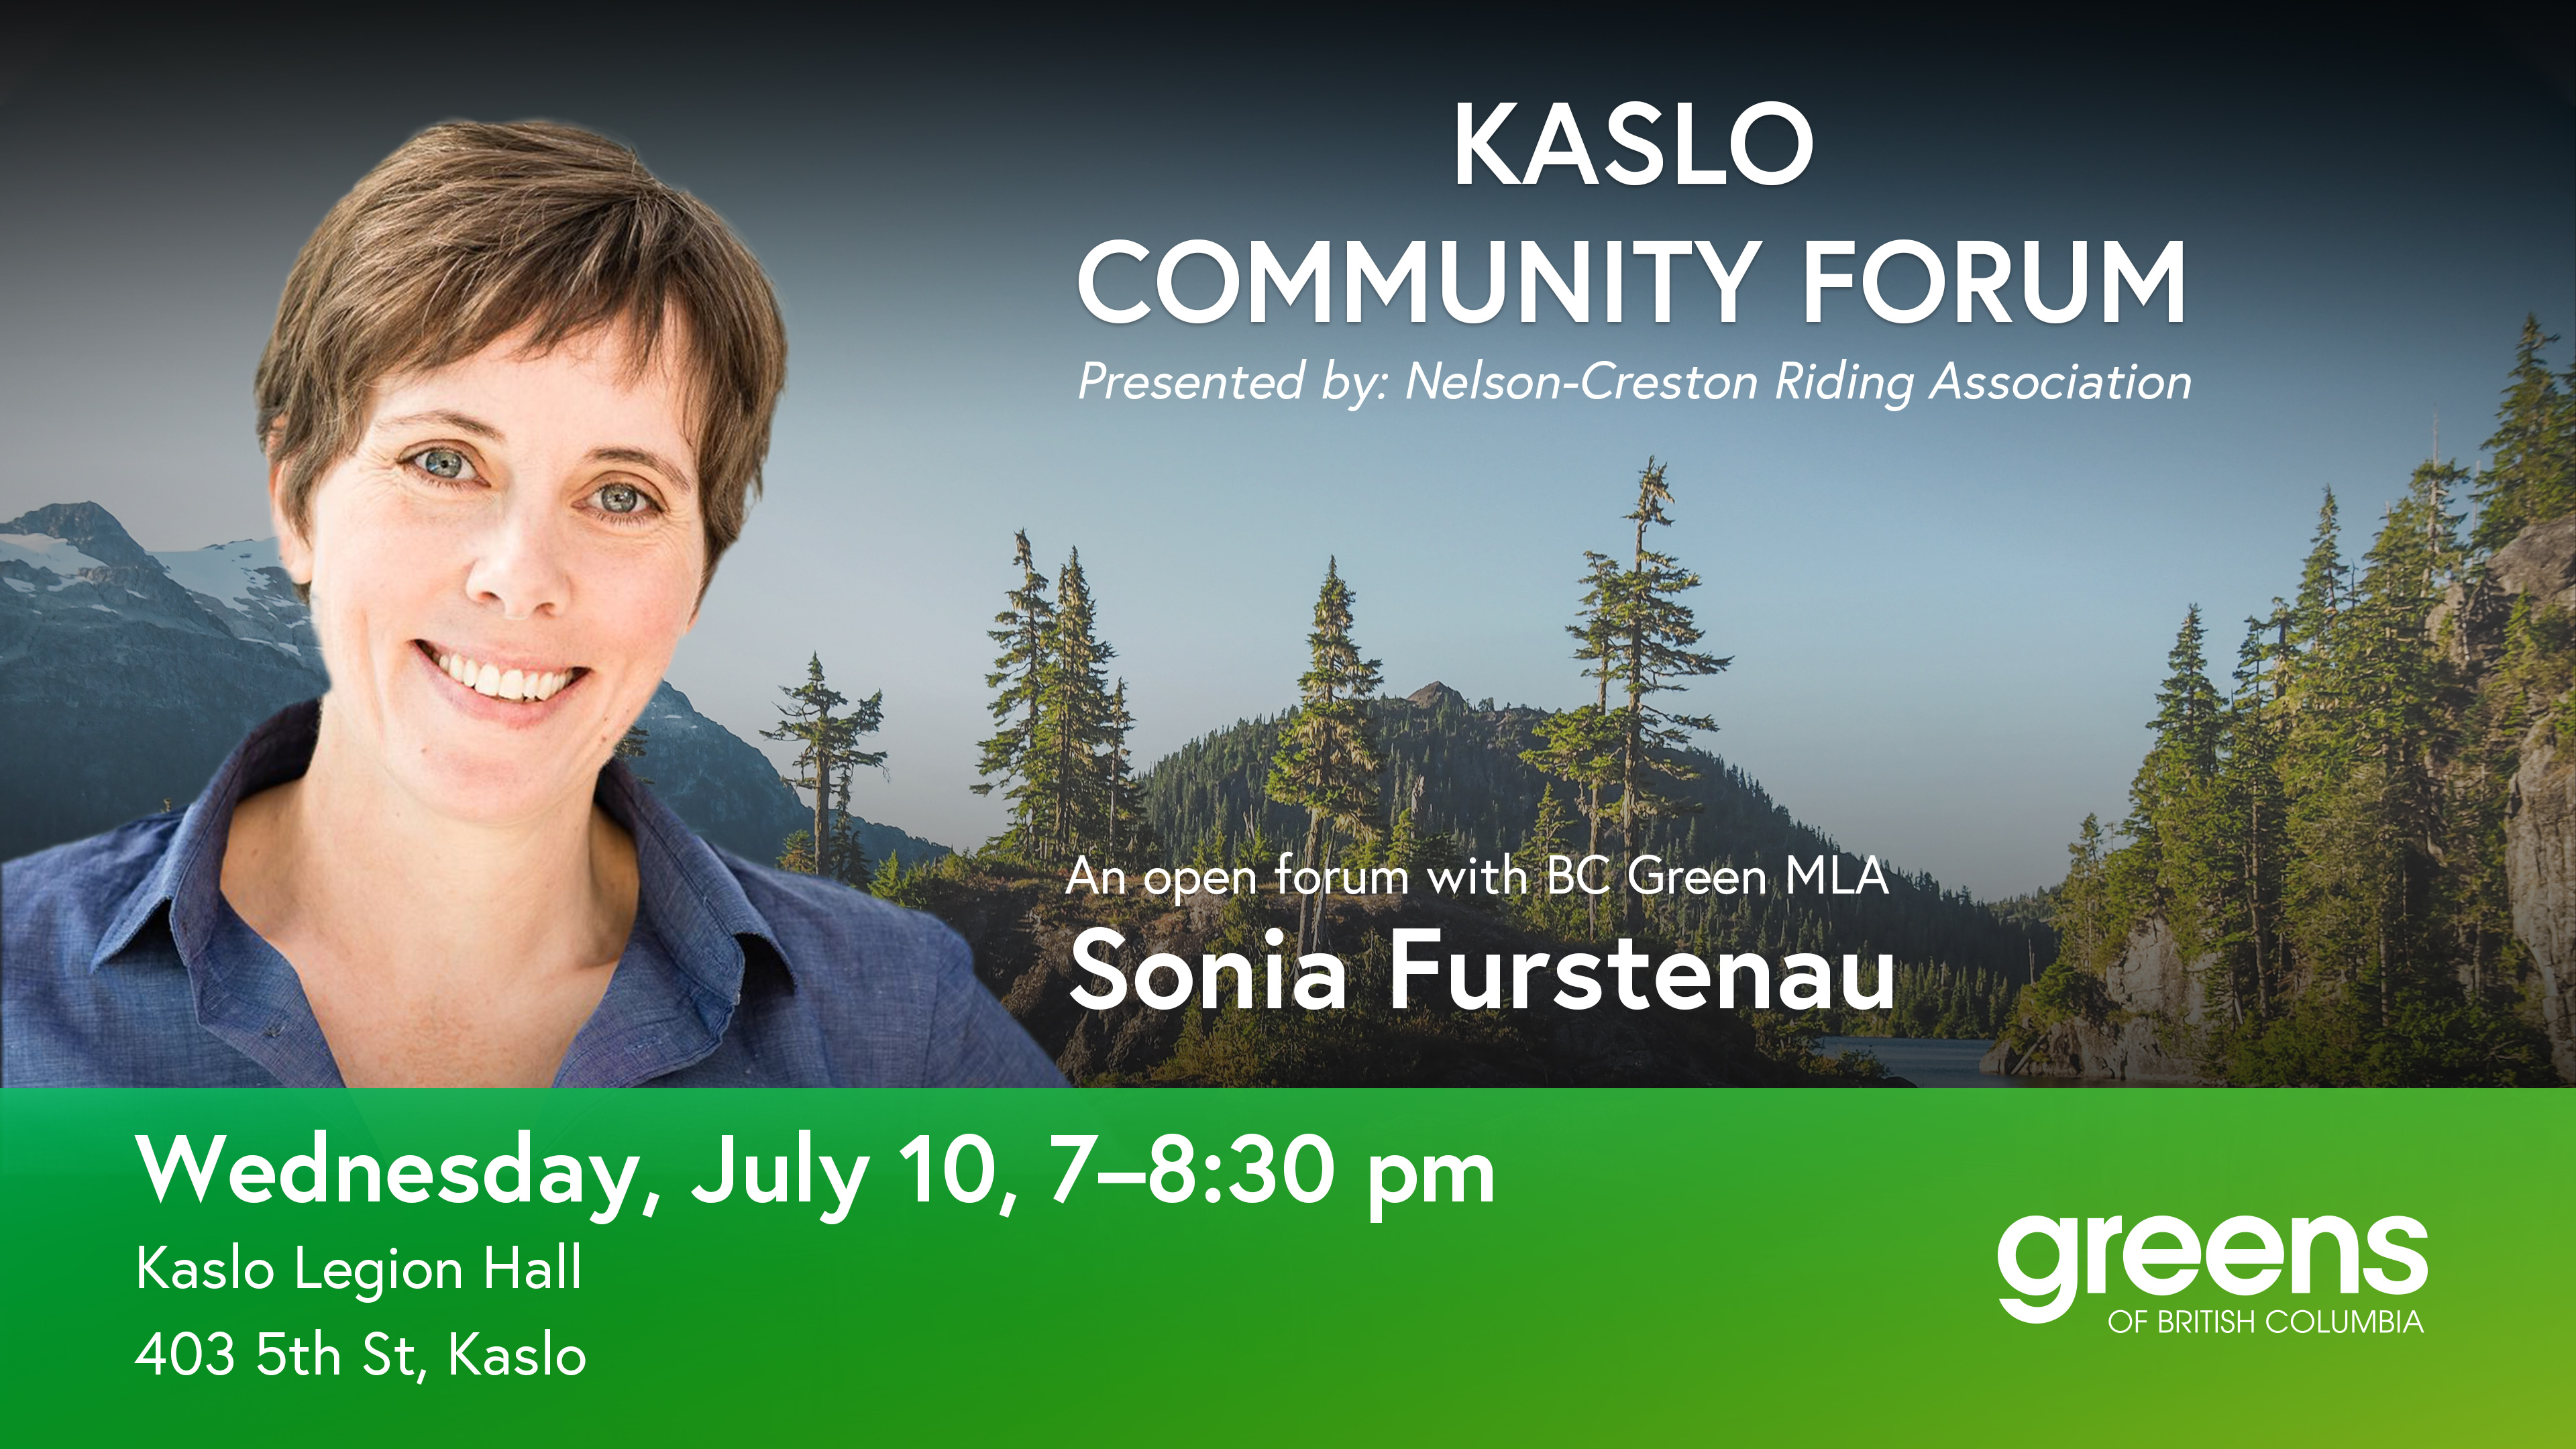 190703-Kaslo_Community_Forum.jpg